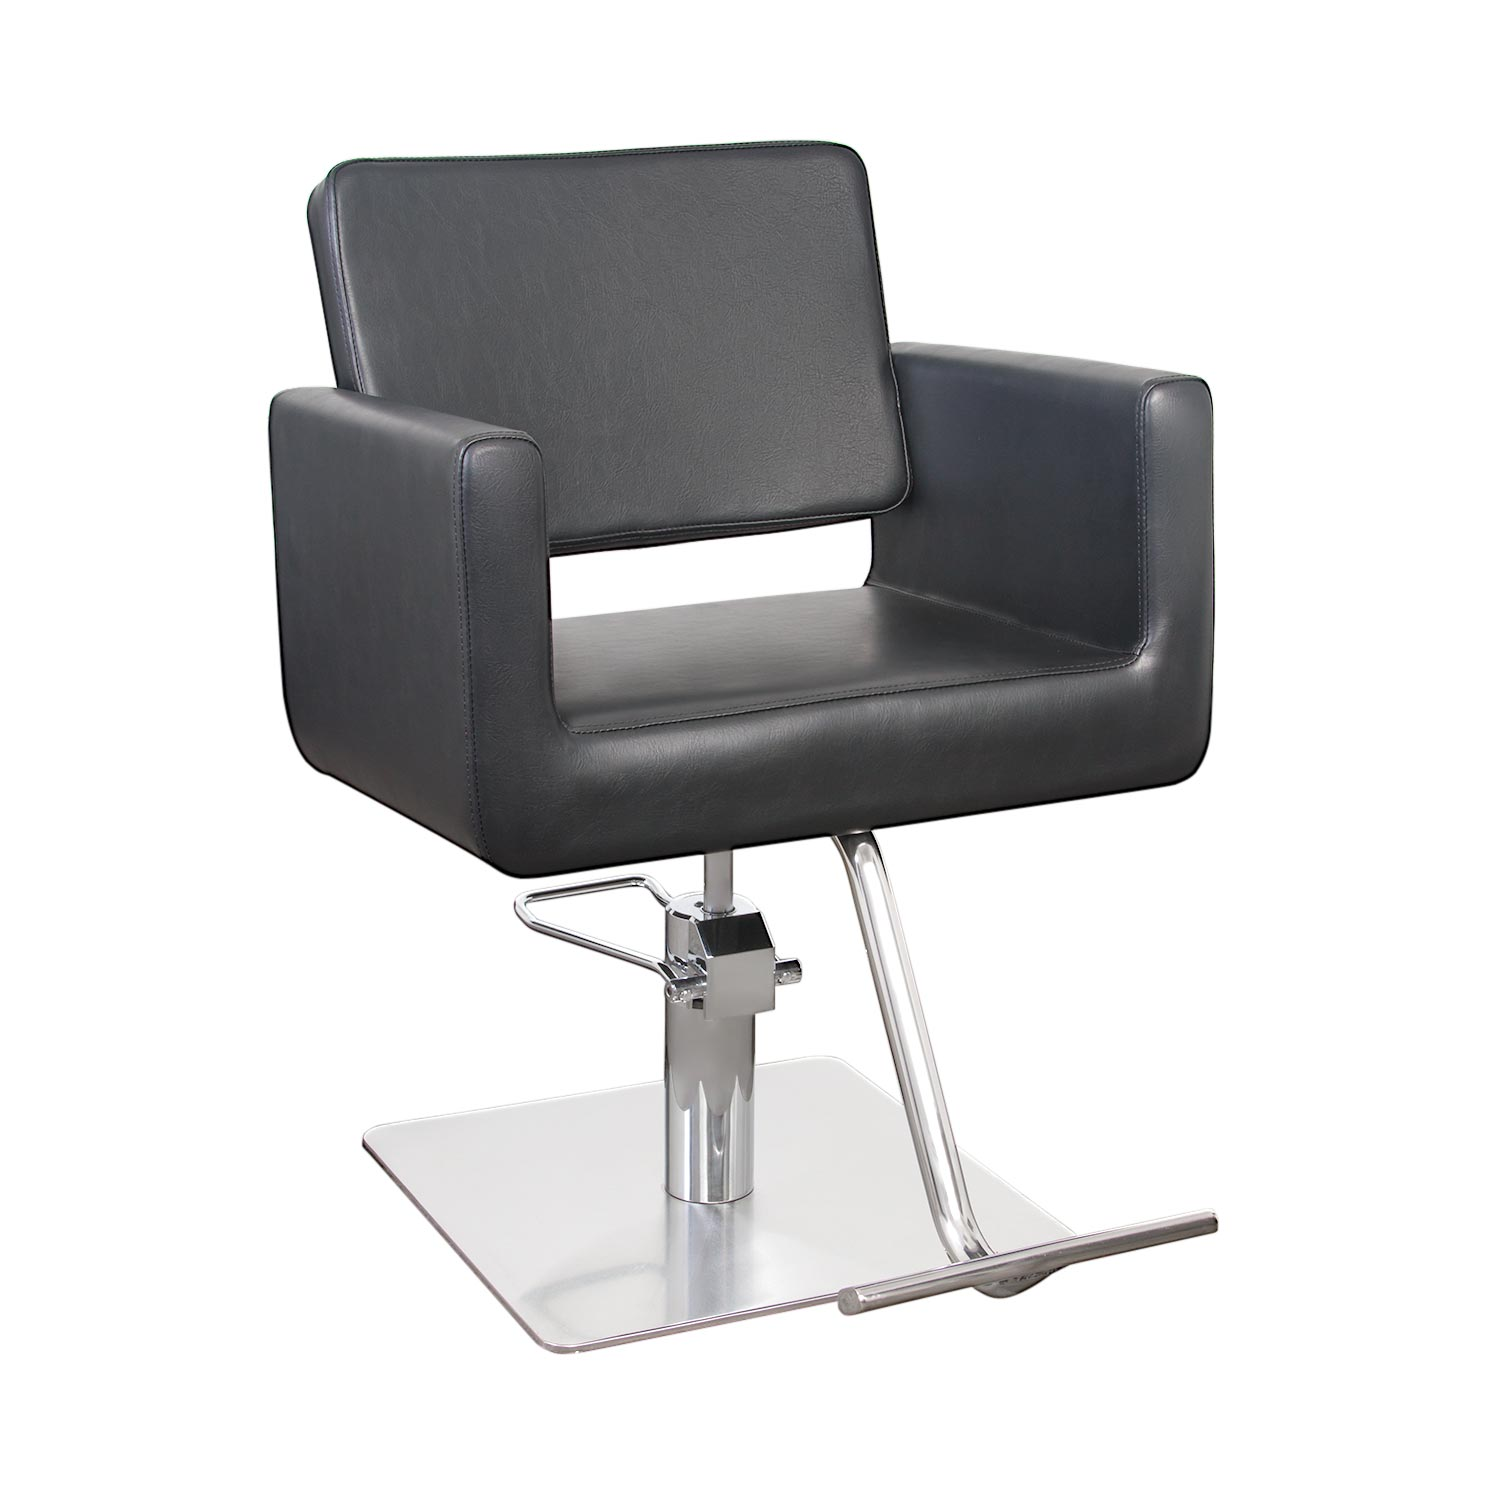 Maxton Square Stylist Chair  main product image